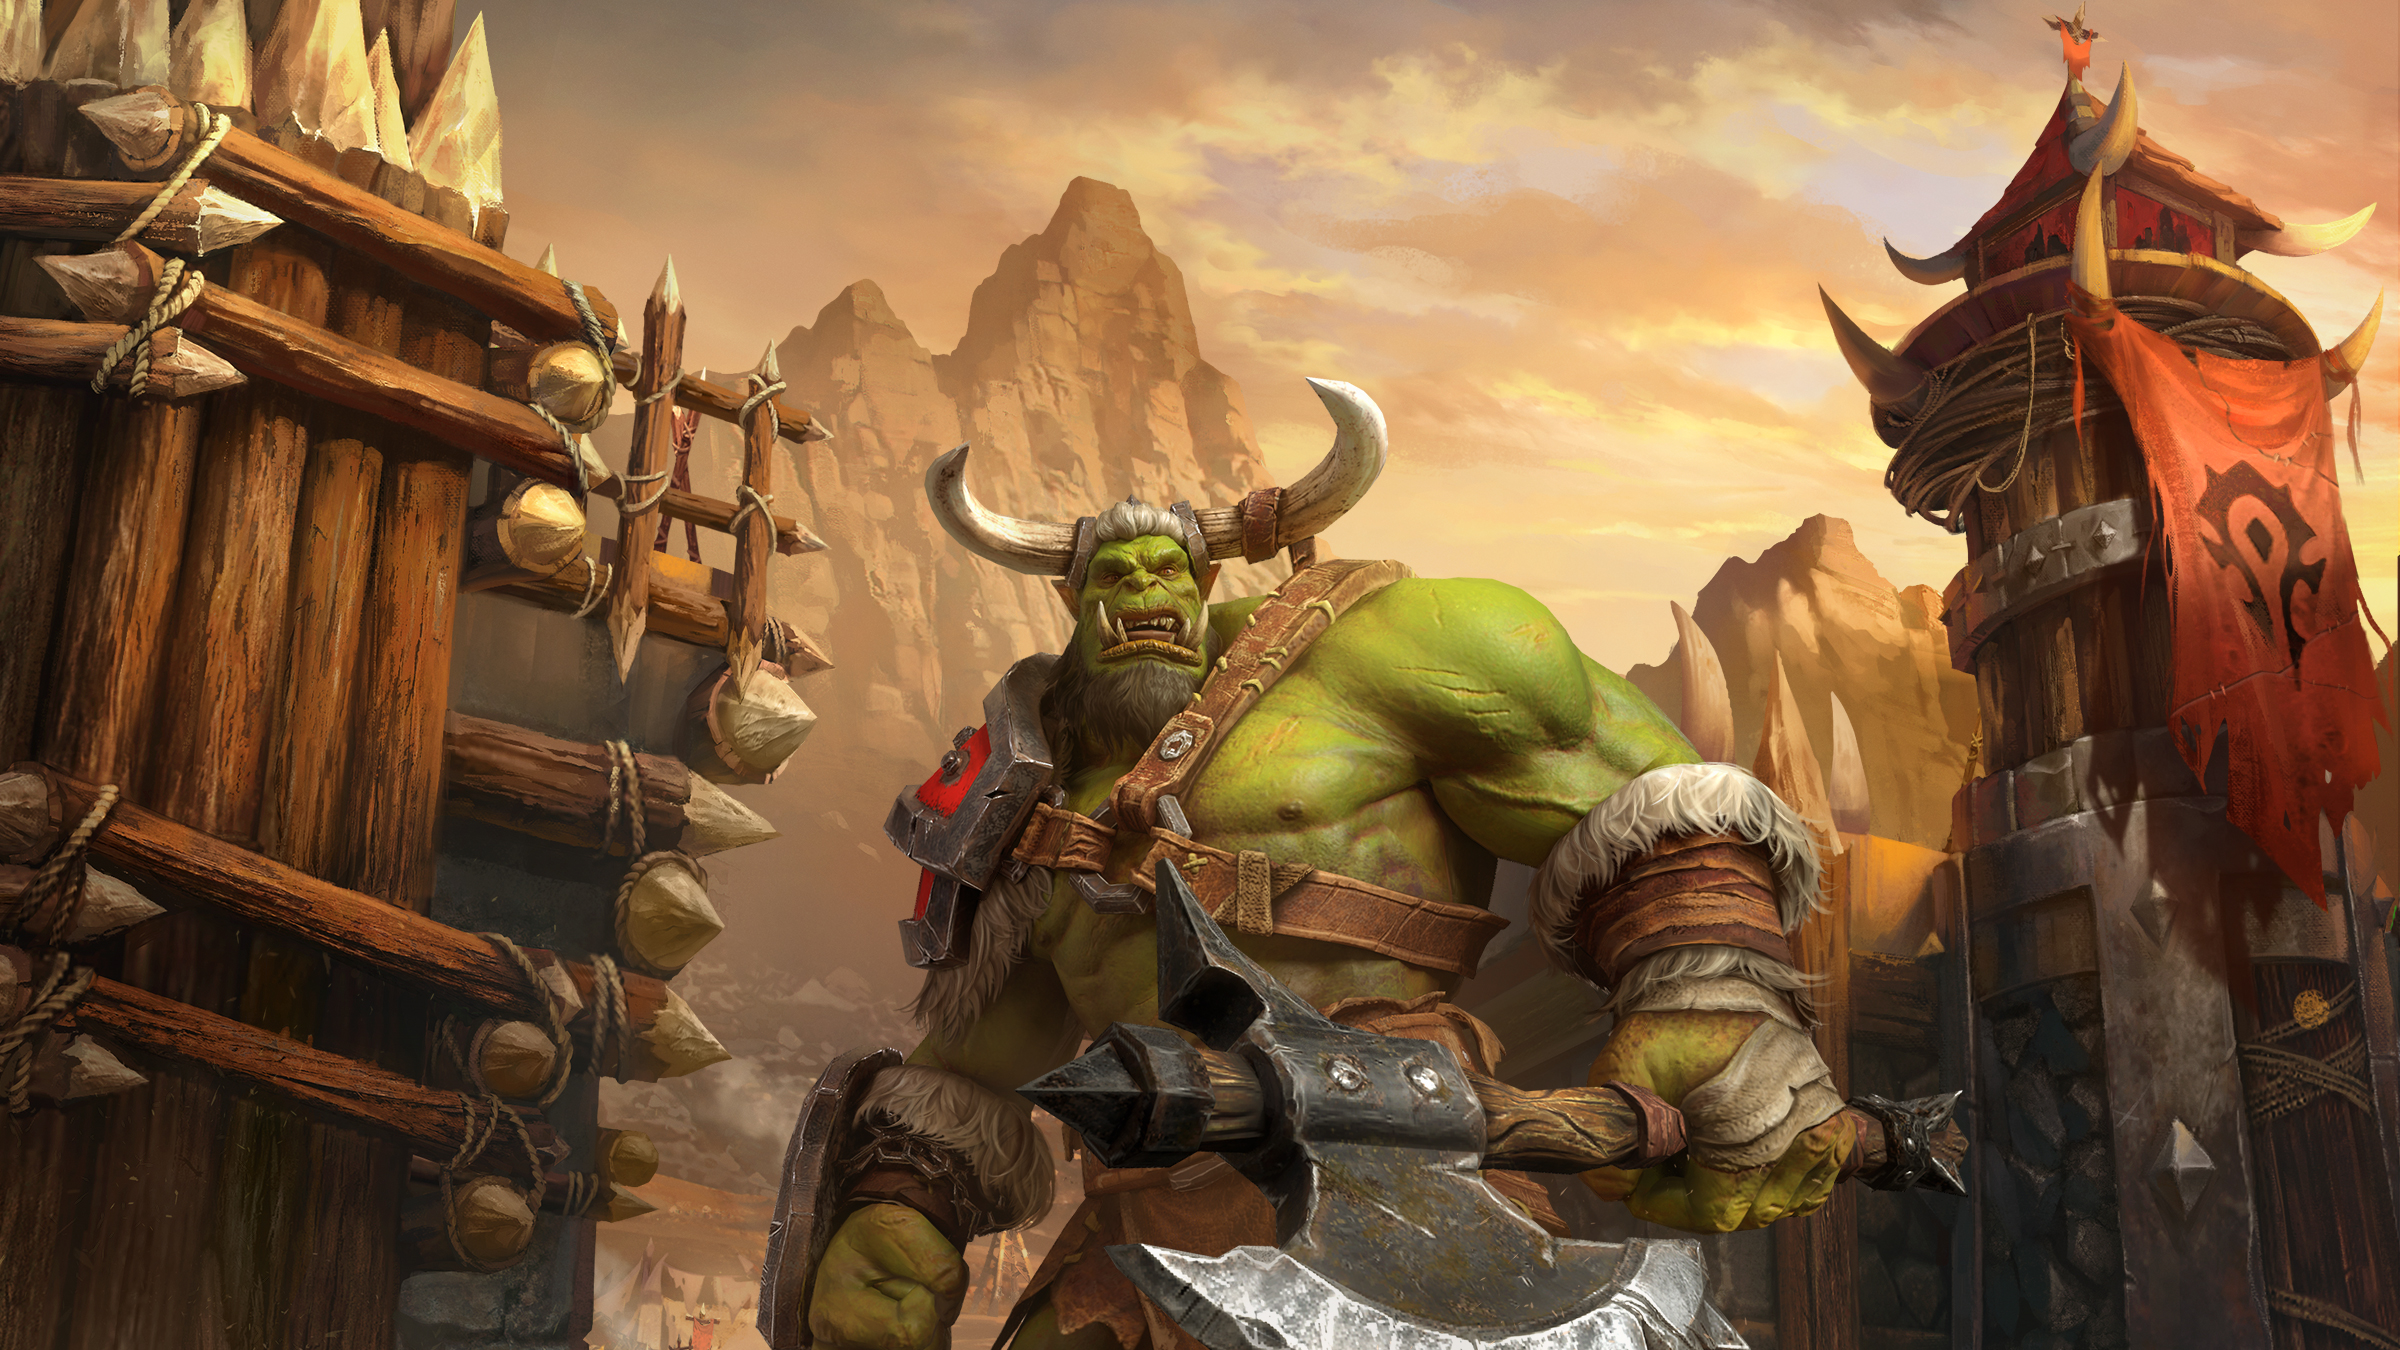 Jugad a Warcraft III: Reforged y volved a vivir los comienzos de World of Warcraft